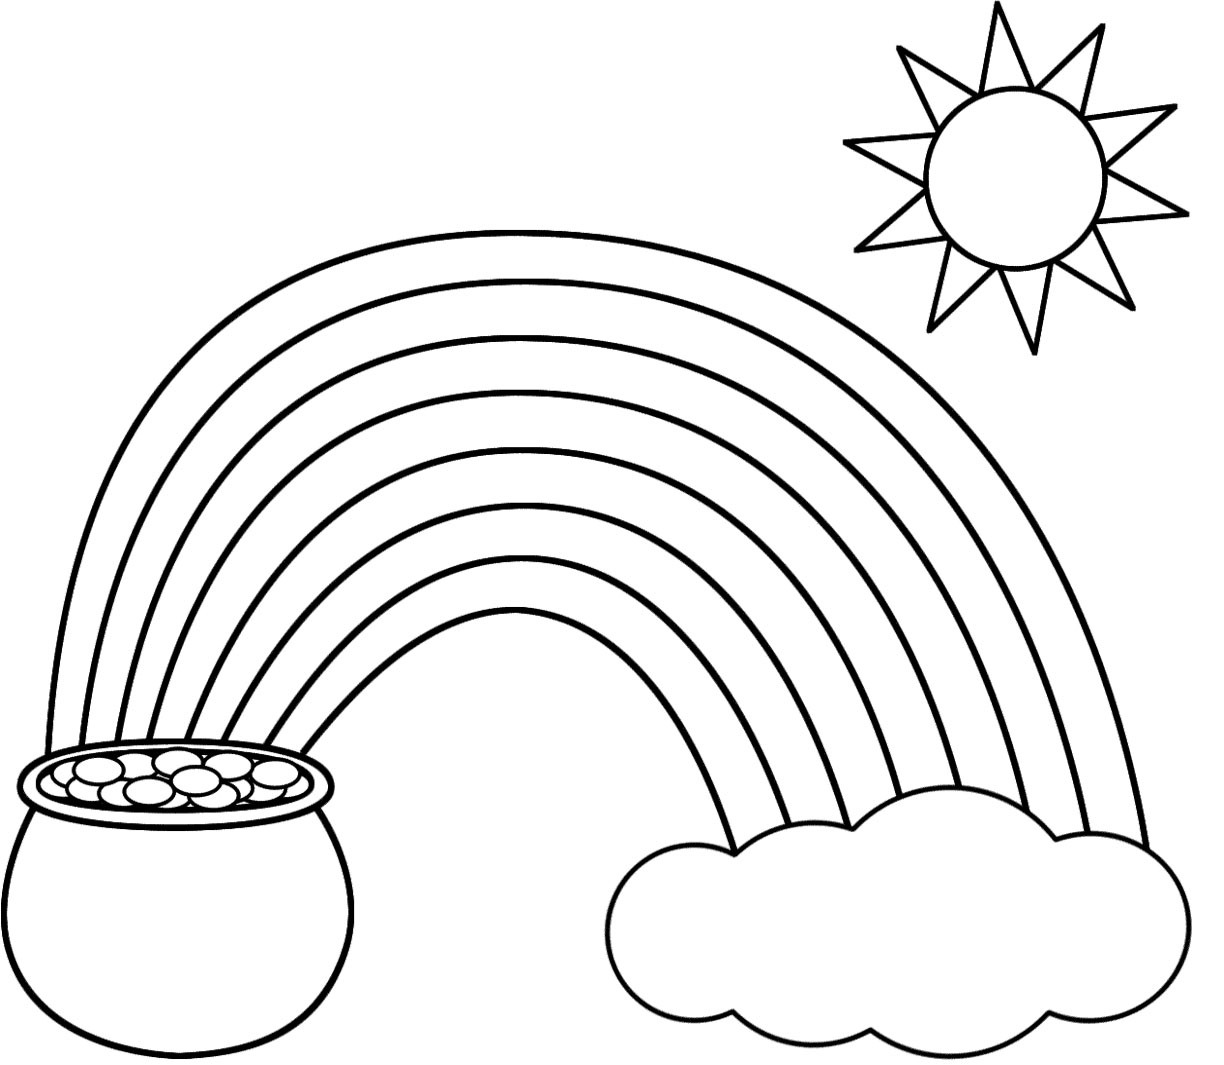 1224x1065 Pot Of Gold Coloring Page Printable